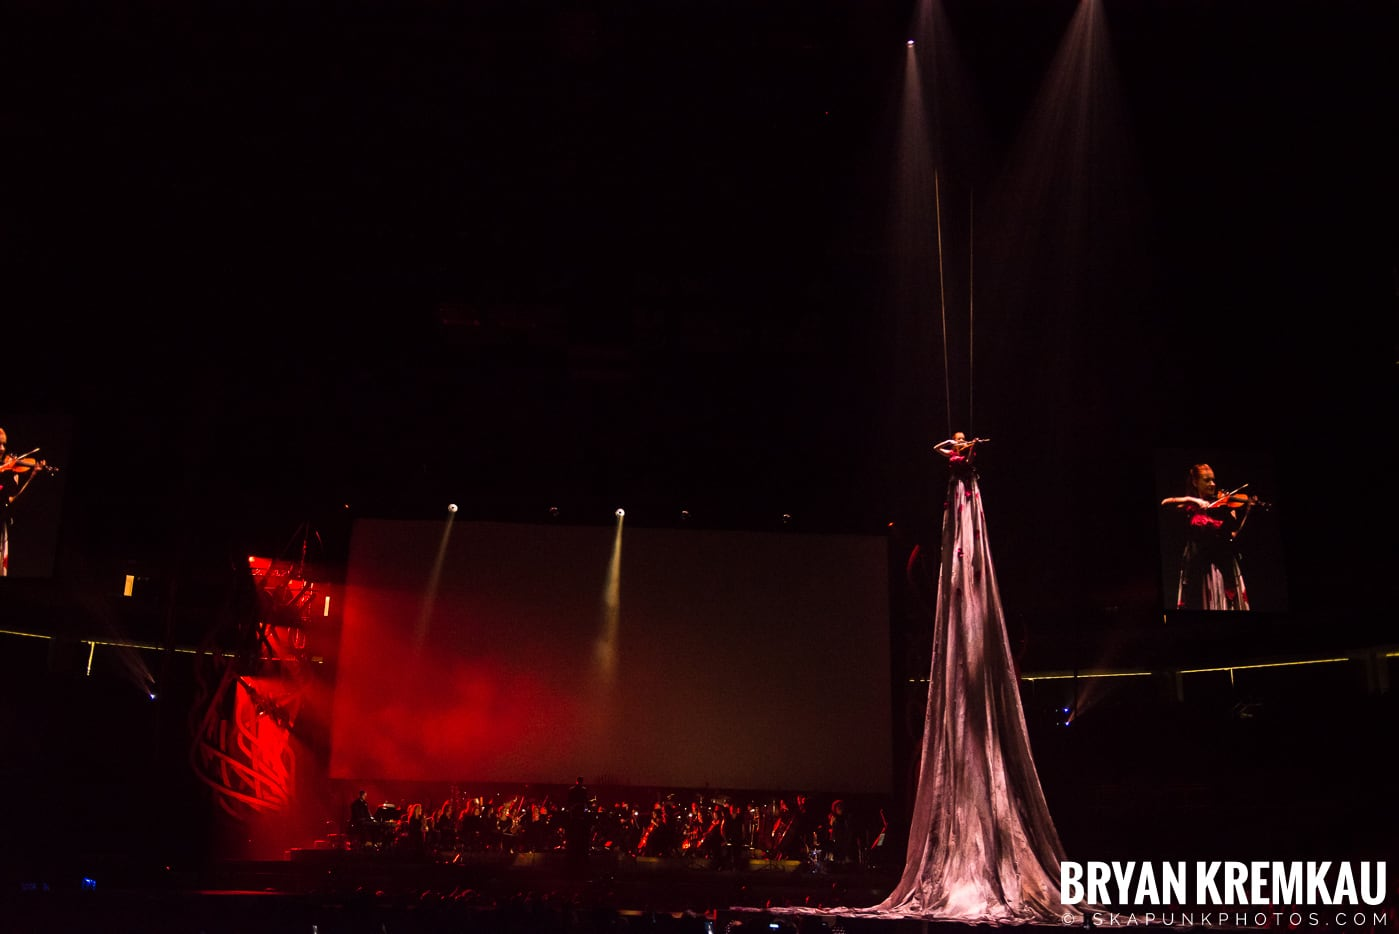 Game of Thrones Live Experience @ Prudential Center, Newark, NJ - 9.26.18 (17)